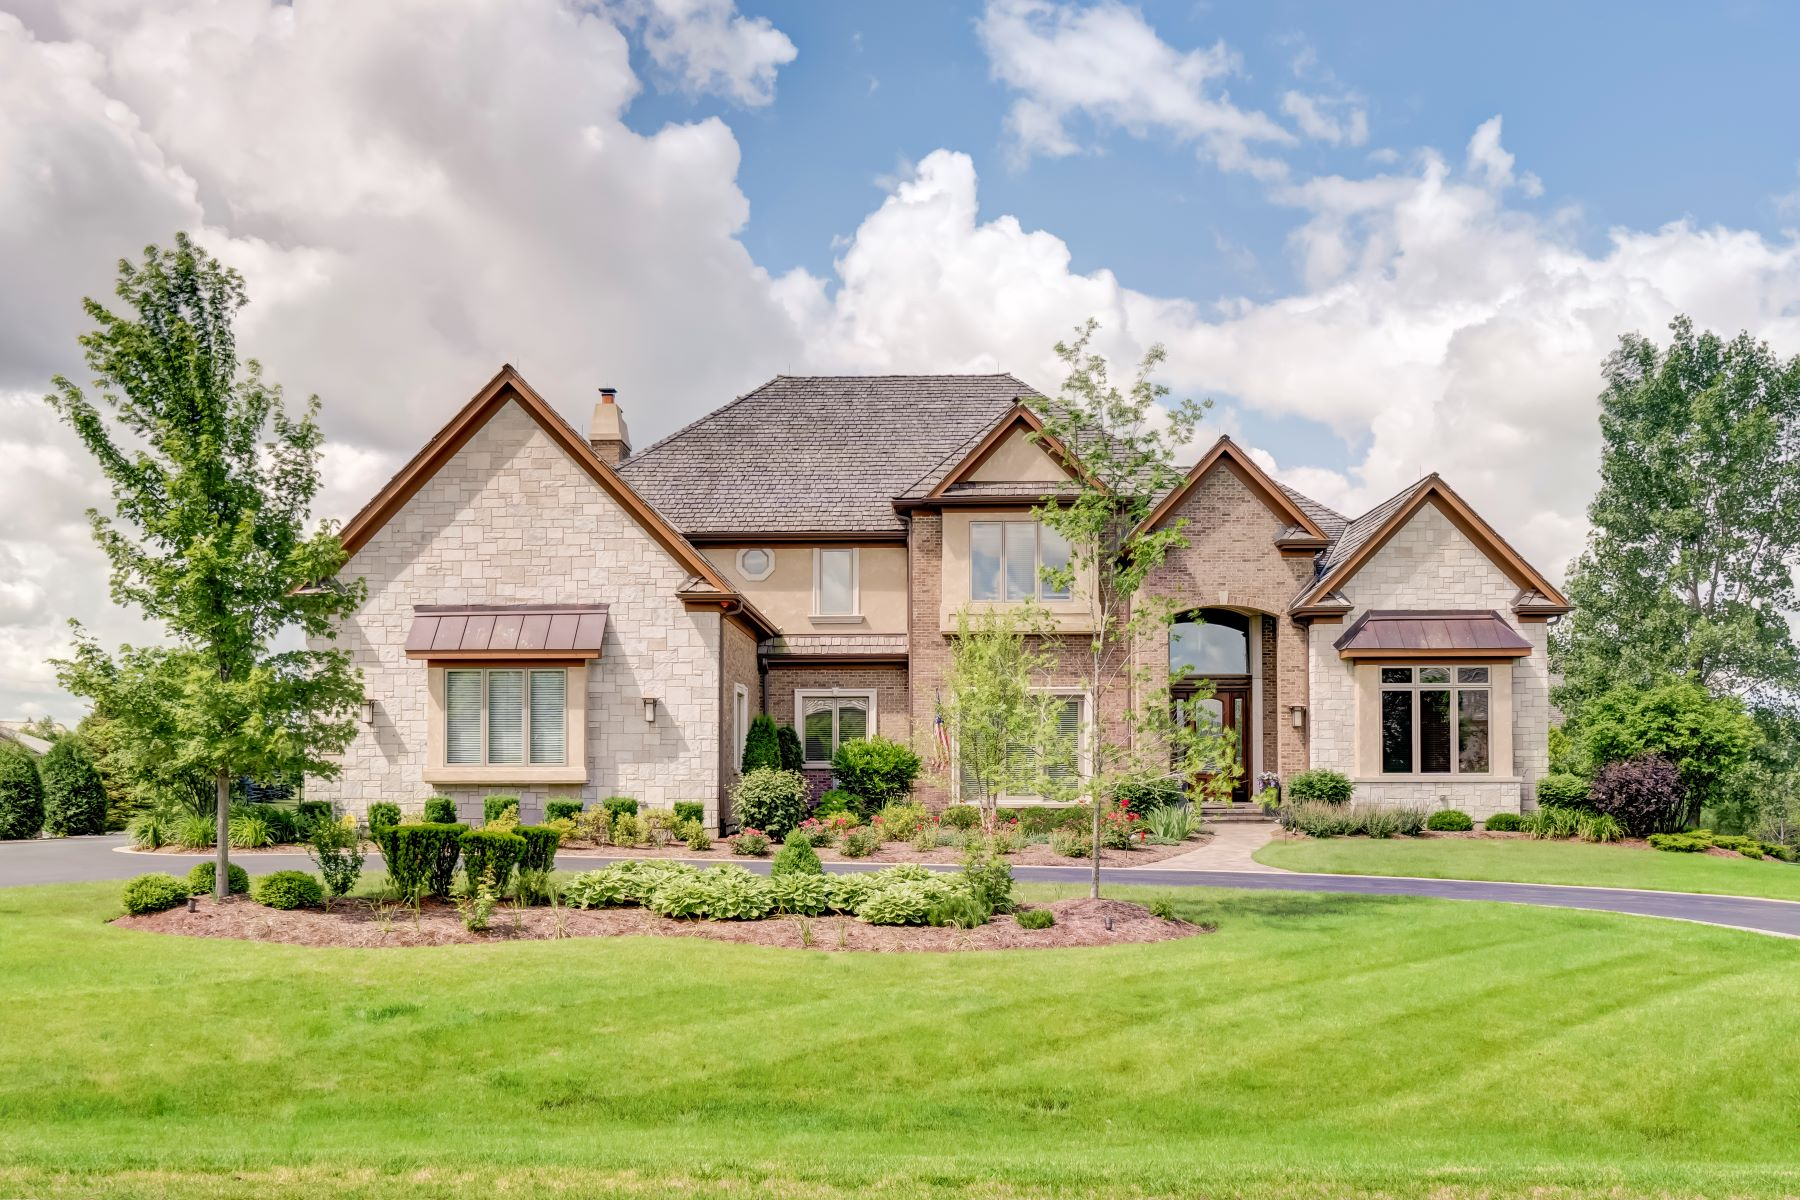 Single Family Home for Sale at Luxurious Custom Retreat 1220 Macalpin Drive Barrington, Illinois 60010 United States